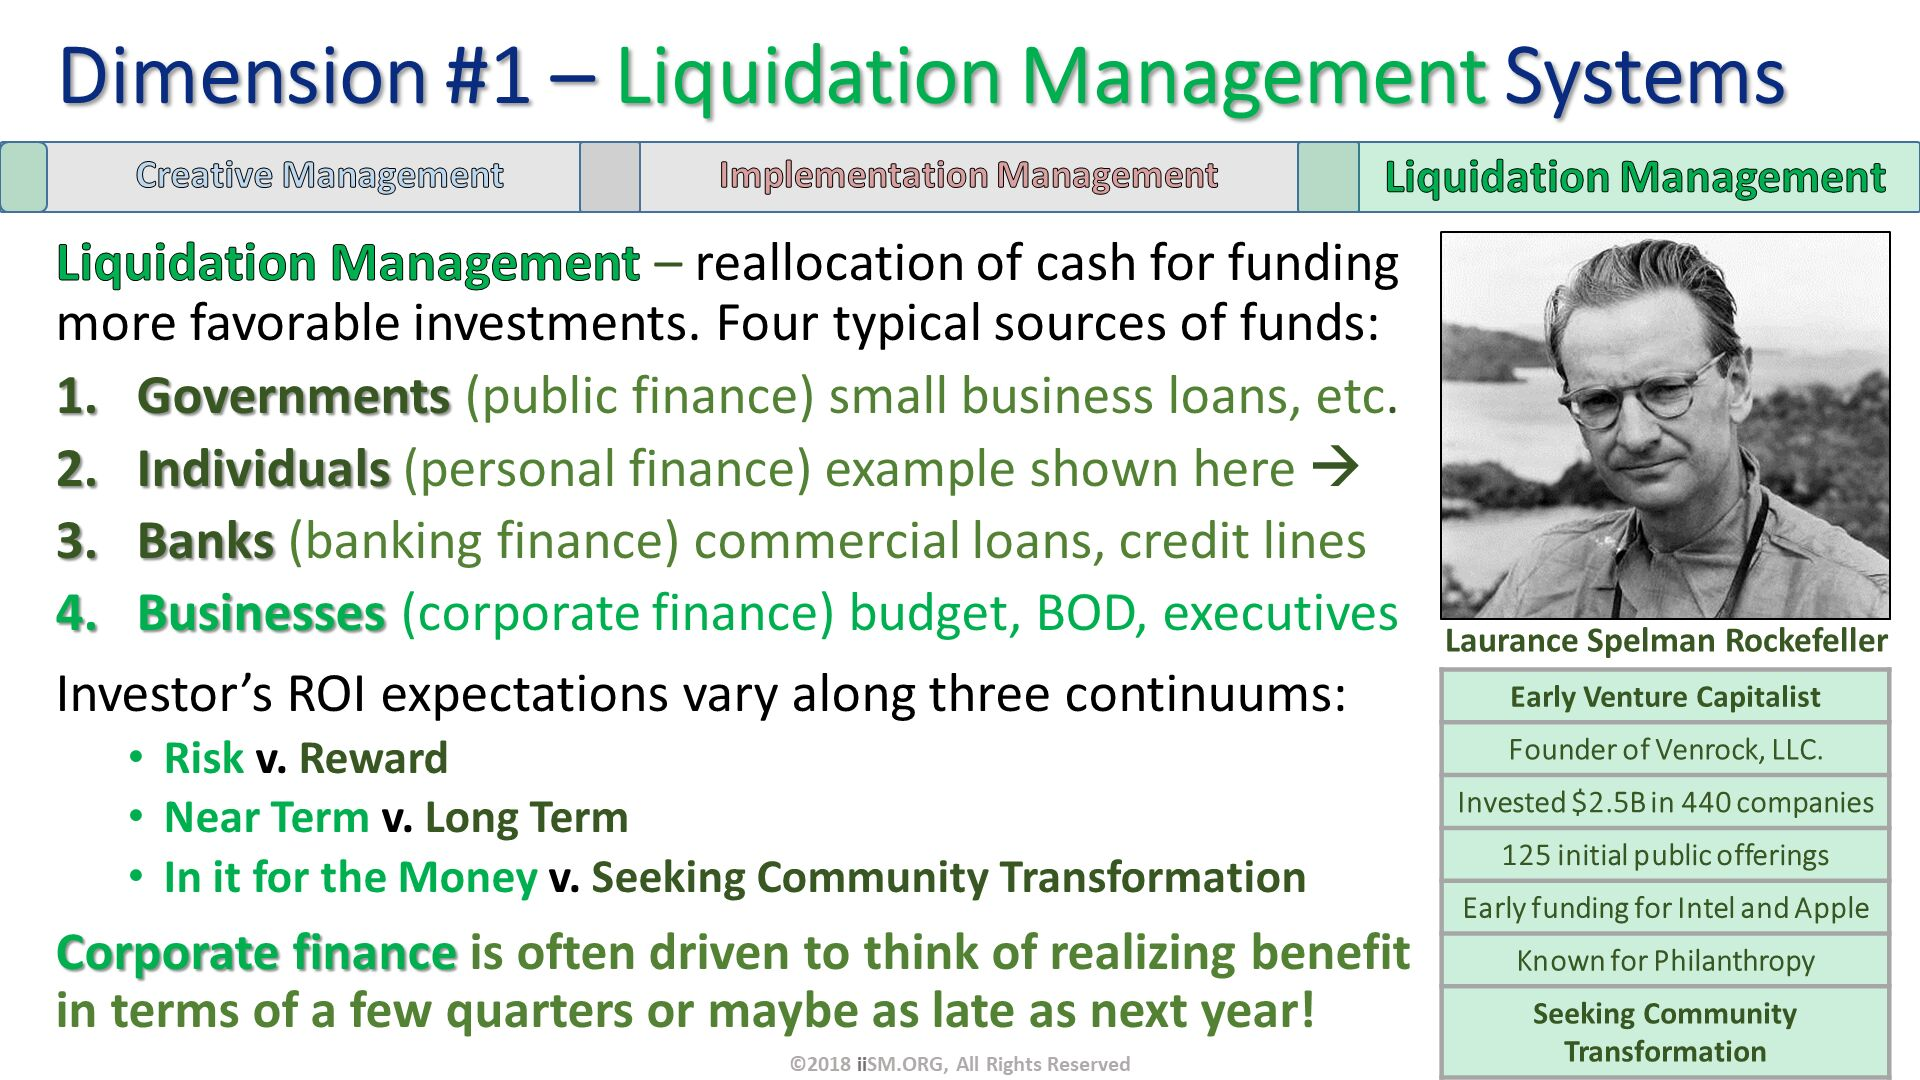 Liquidation Management – reallocation of cash for funding more favorable investments. Four typical sources of funds: Governments (public finance) small business loans, etc.  Individuals (personal finance) example shown here   Banks (banking finance) commercial loans, credit lines Businesses (corporate finance) budget, BOD, executives Investor's ROI expectations vary along three continuums: Risk v. Reward        Near Term v. Long Term  In it for the Money v. Seeking Community Transformation Corporate finance is often driven to think of realizing benefit in terms of a few quarters or maybe as late as next year!. Dimension #1 – Liquidation Management Systems. Laurance Spelman Rockefeller. ©2018 iiSM.ORG, All Rights Reserved.